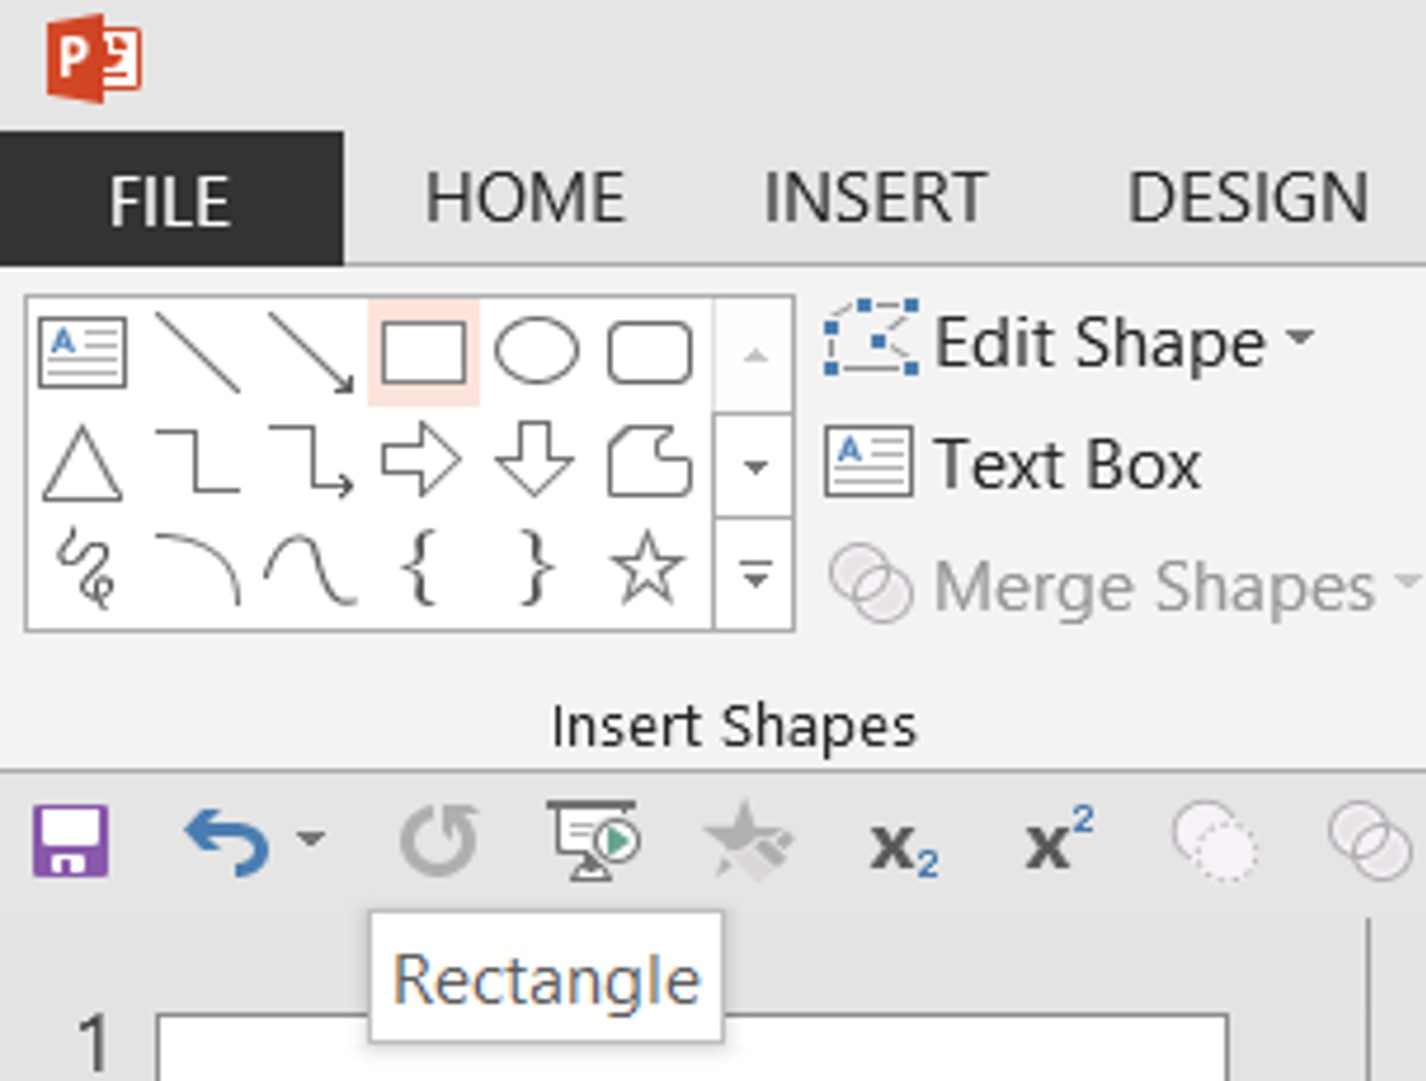 Step Two: Find the Rectangle Drawing Tool in the Drawing Group under the Home Tab or in the Illustrations Group under the Insert Tab.